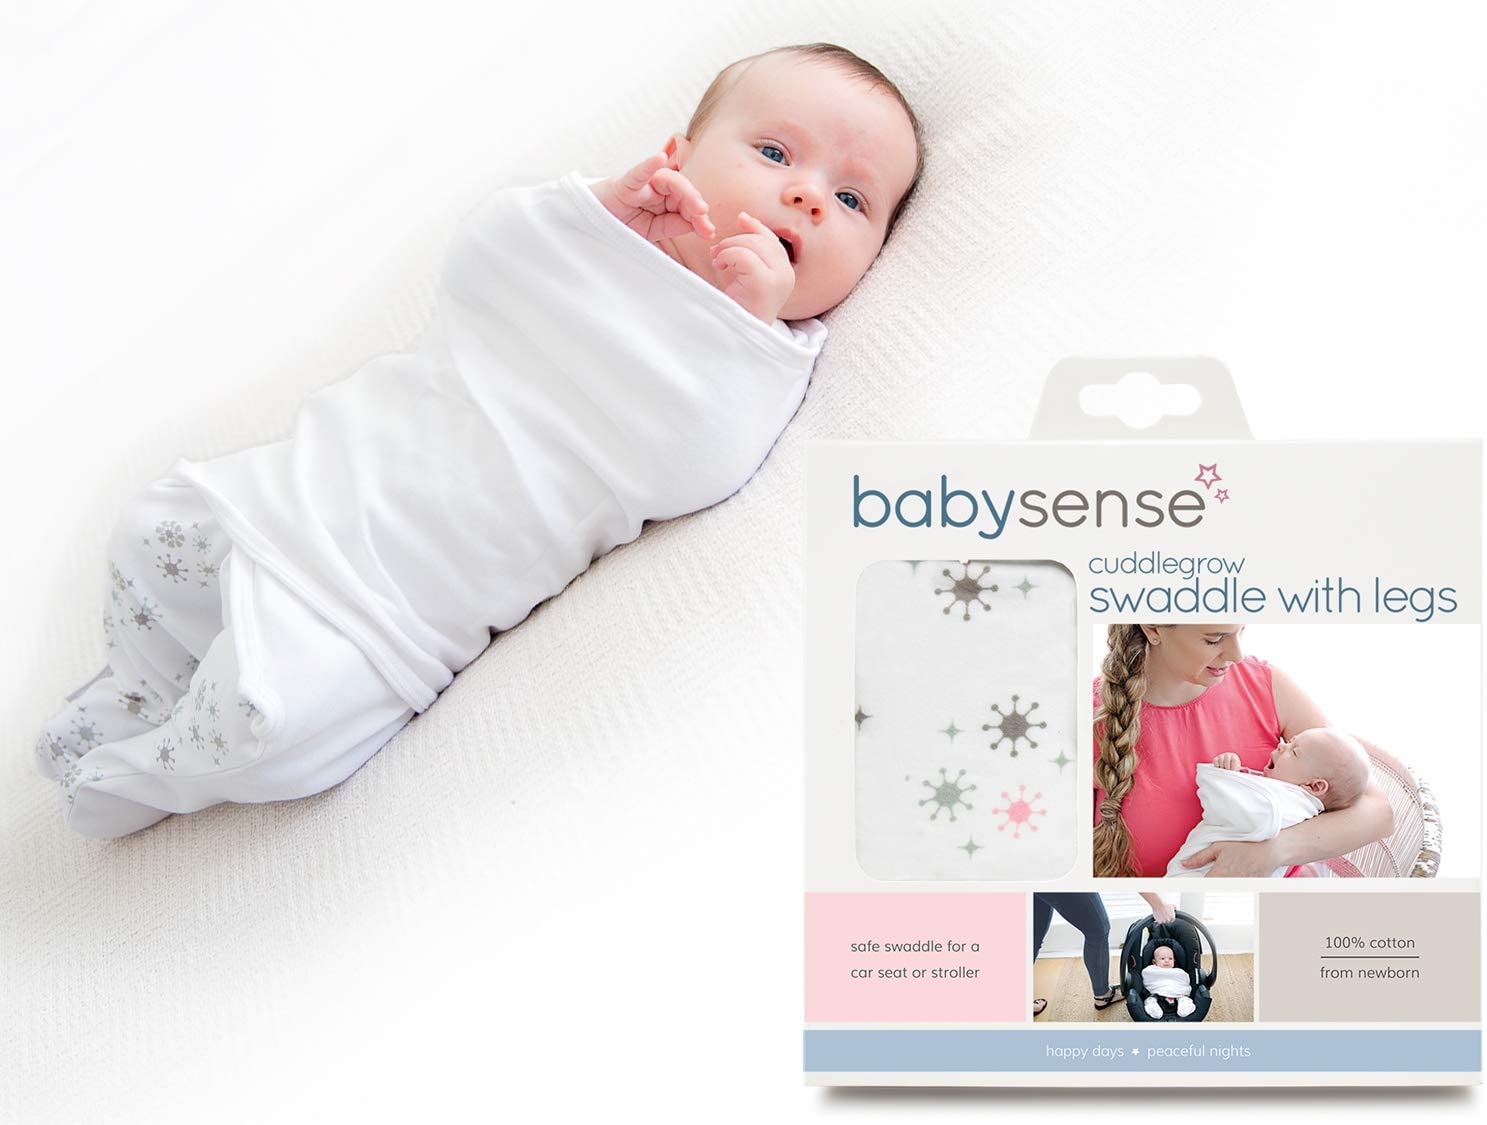 Cuddlegrow Swaddle Blanket/Award-Winning Baby Wrap with Legs | Home, Car, Travel, Stroller | Stretchy & Safe Breathable Cotton for Sleep,Temperature, Feeding, Calming (Pink)